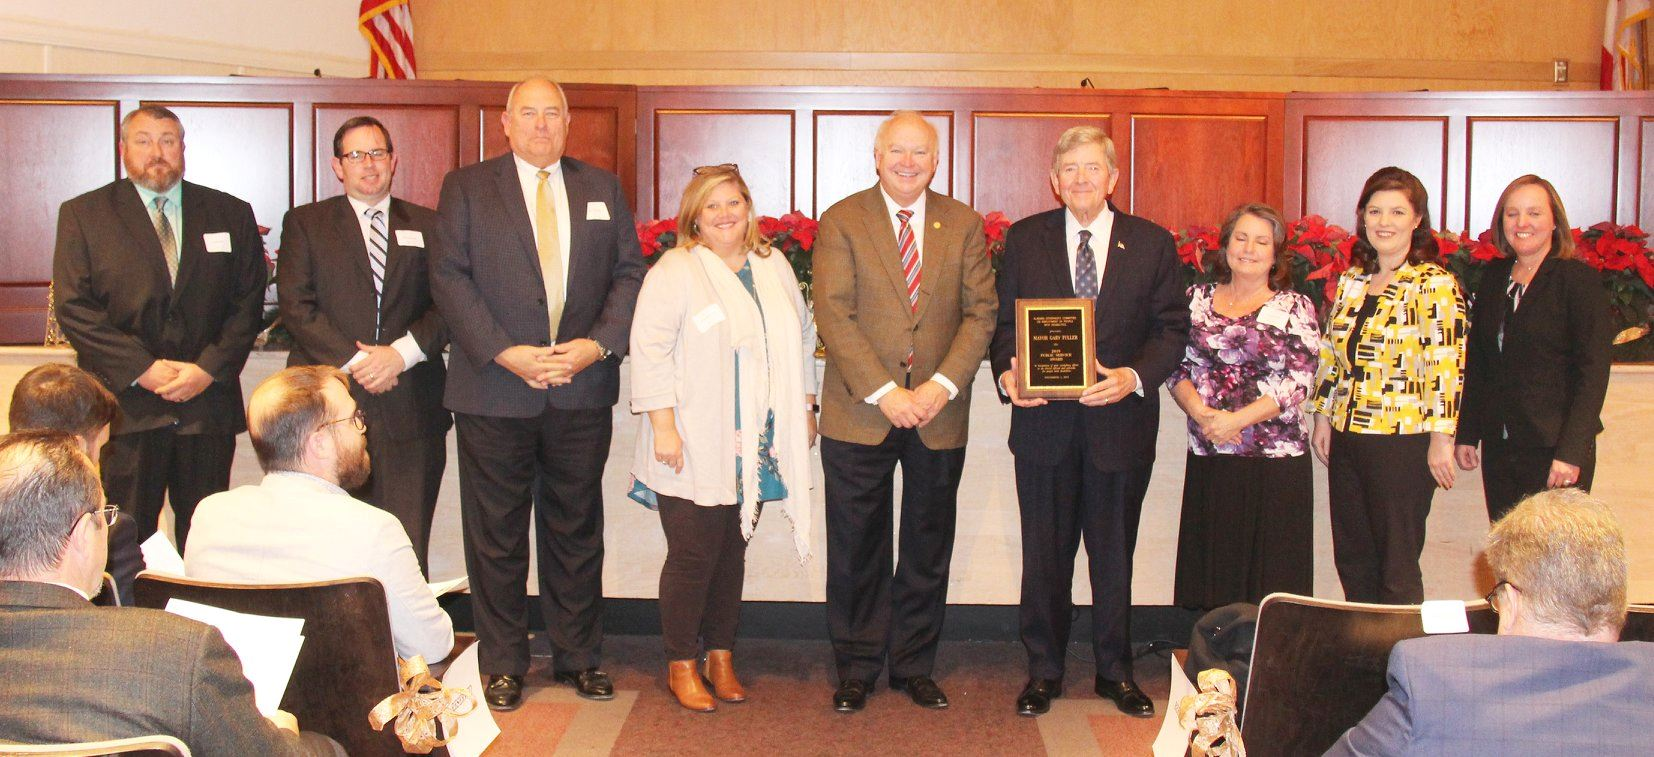 THE CITY OF OPELIKA RECEIVES STATE PUBLIC SERVICE AWARD FROM ALABAMA GOVERNOR'S COMMITTEE OF PEOPLE